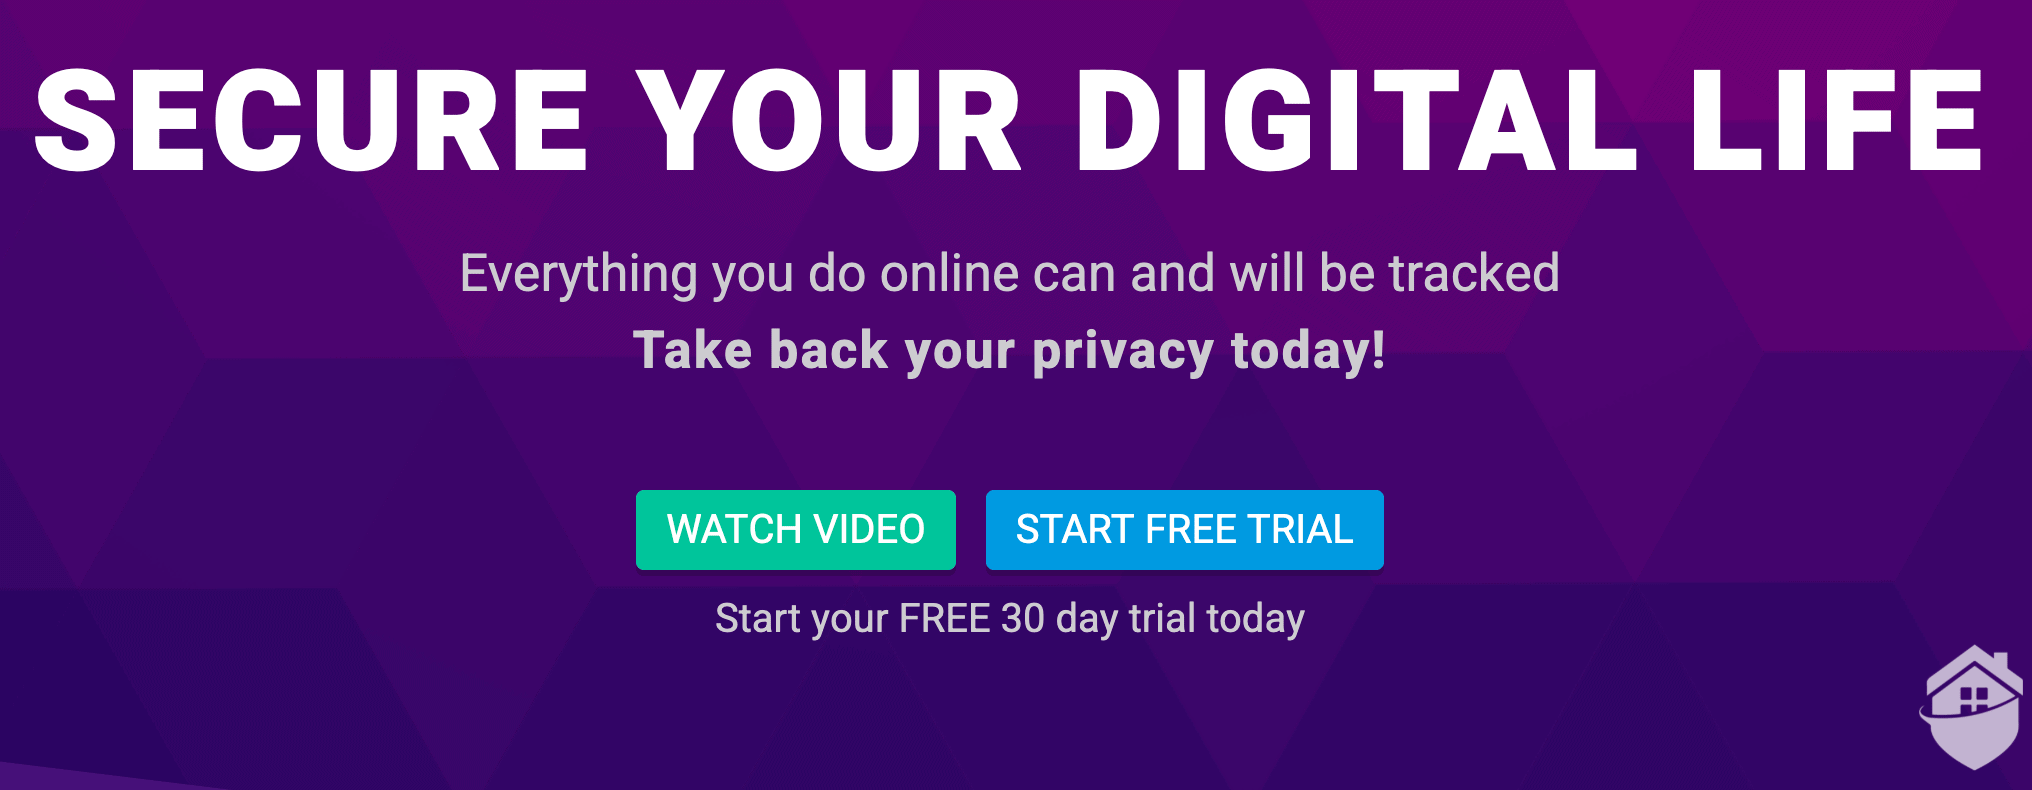 You can try VPNSecure for free for 30 days.